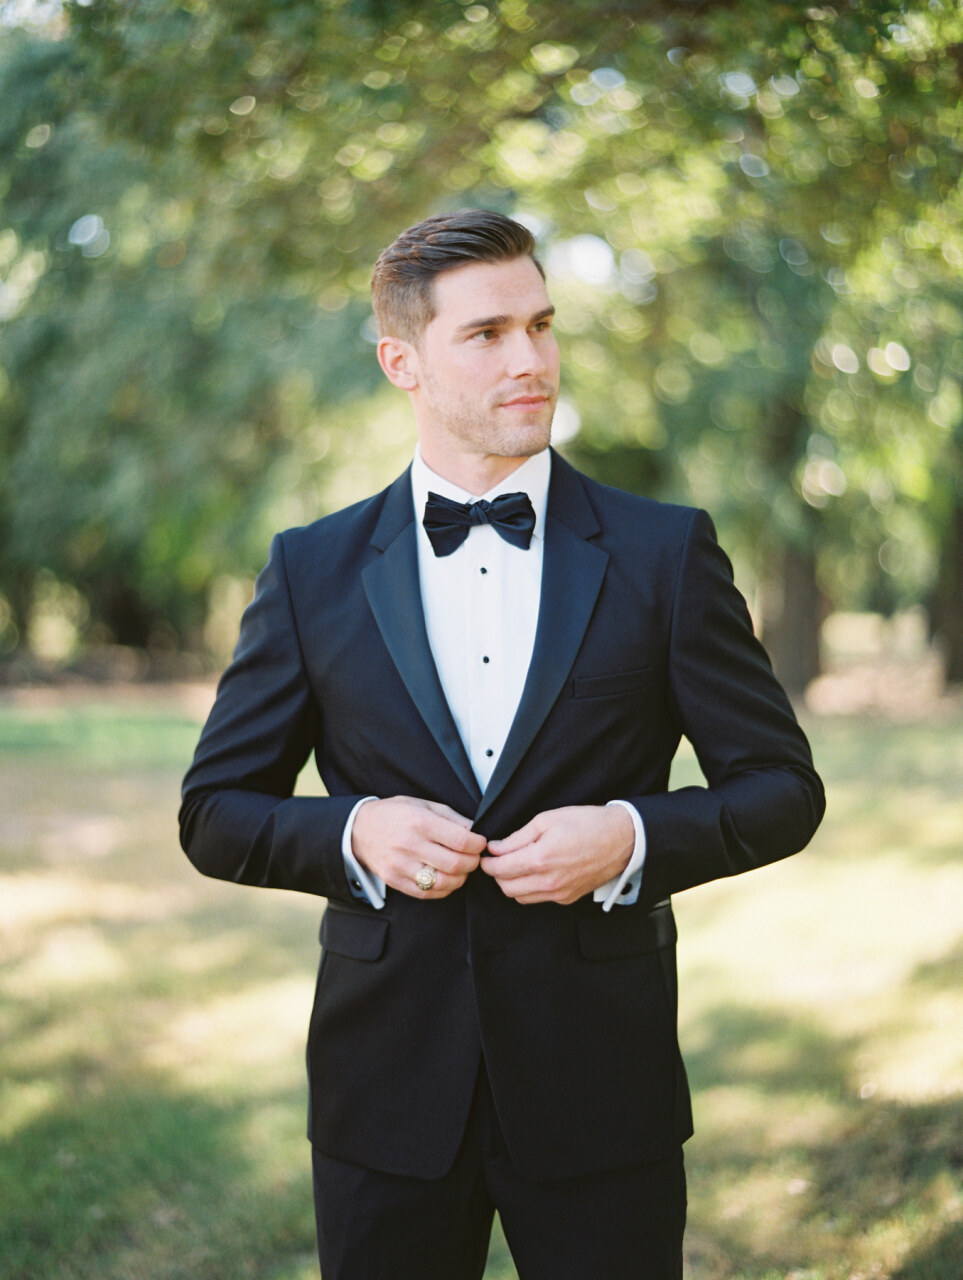 Generation Tux Black Wedding Tuxedo | Alexa Kay Events